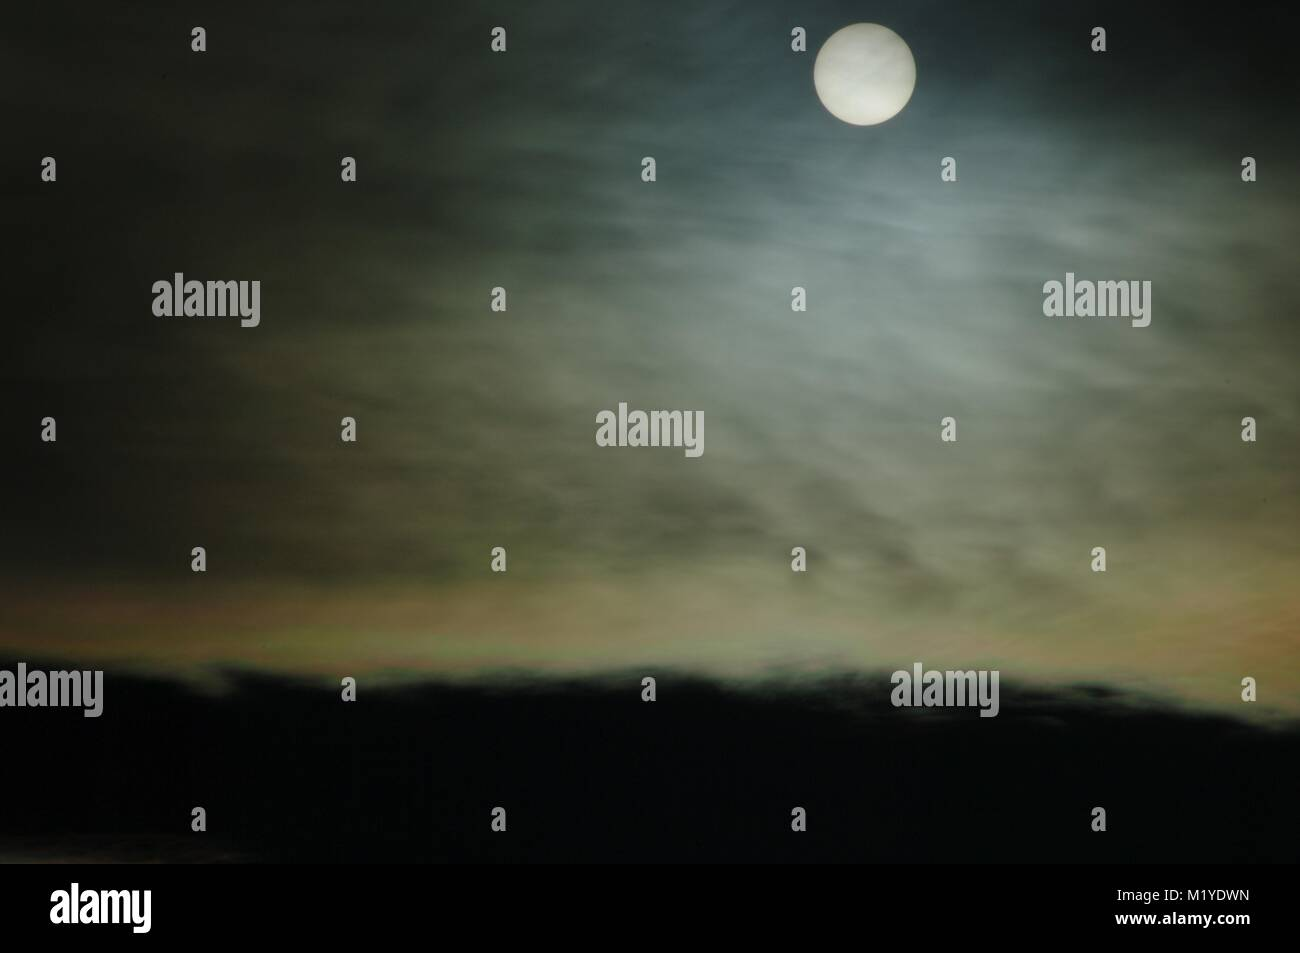 Weak Sun Shines through Maceral Altocumulus Clouds in a Spooky Abstract, Dark yet Glowing Effect. British Weather, - Stock Image